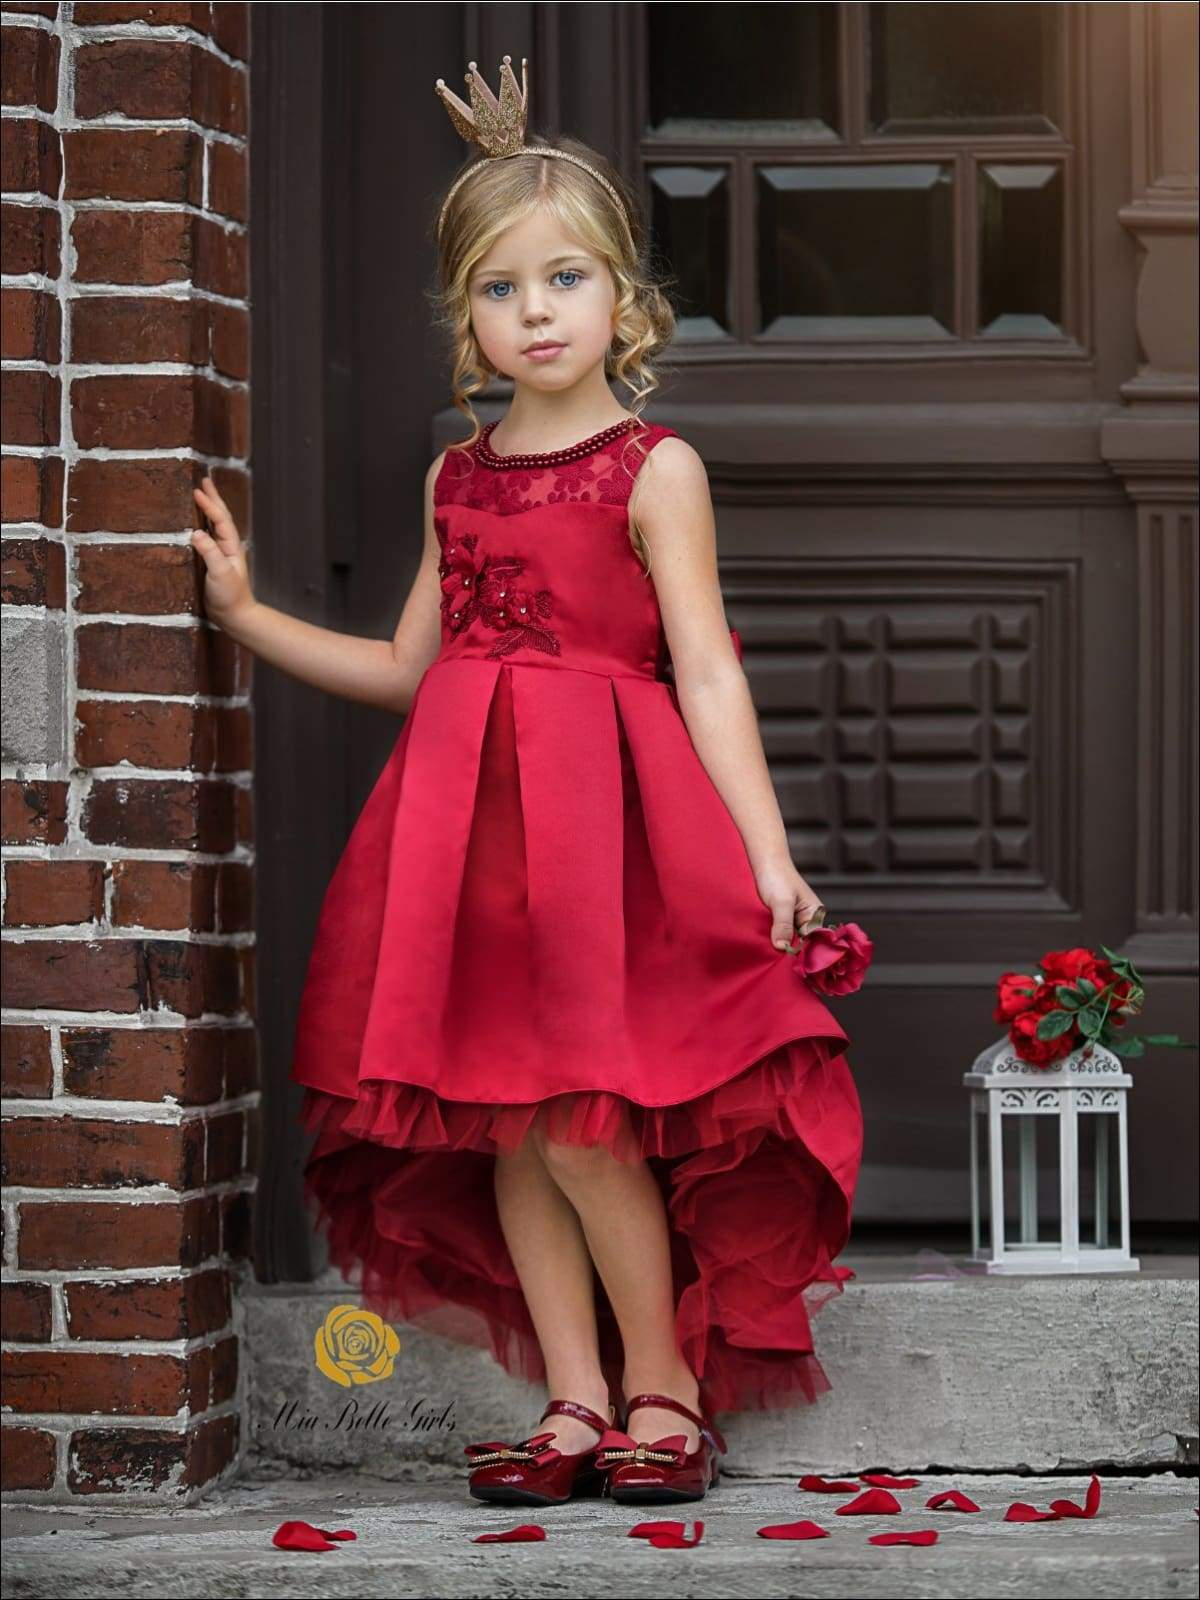 girls-sleeveless-floral-applique-pleated-hi-low-holiday-special-occasion-dress-2-color-options-red-2t3t-all-dresses-cf-blue-green-grey-pink-fall-mia-belle-baby_353.jpg